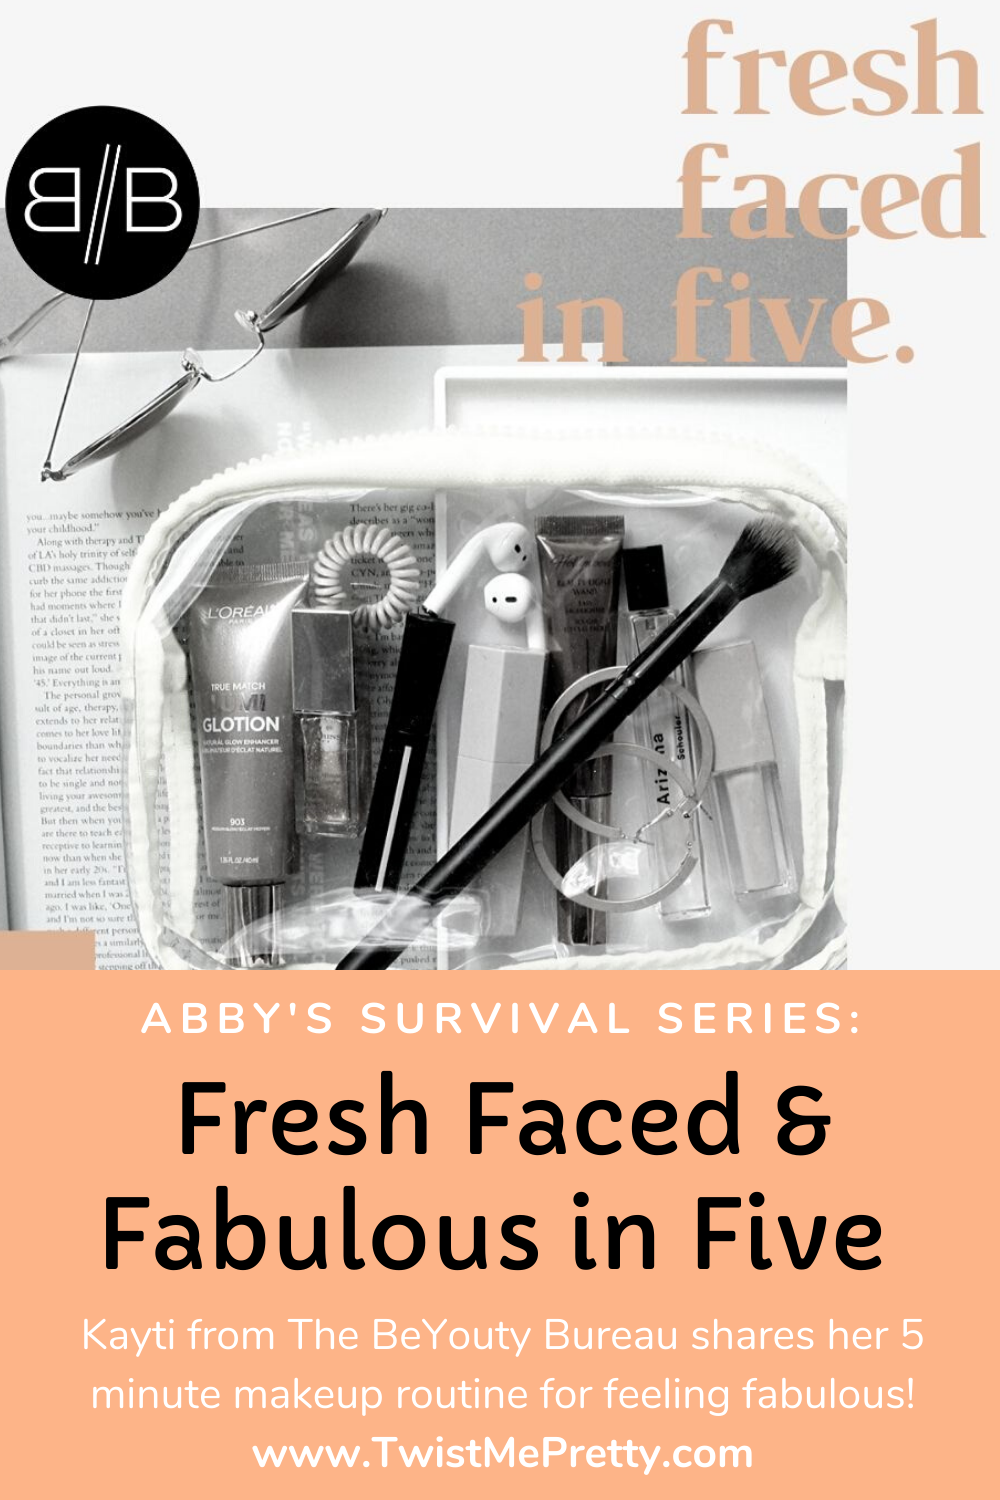 Abby's Survival Series- Fresh Faced and Fabulous in Five. www.TwistMePretty.com